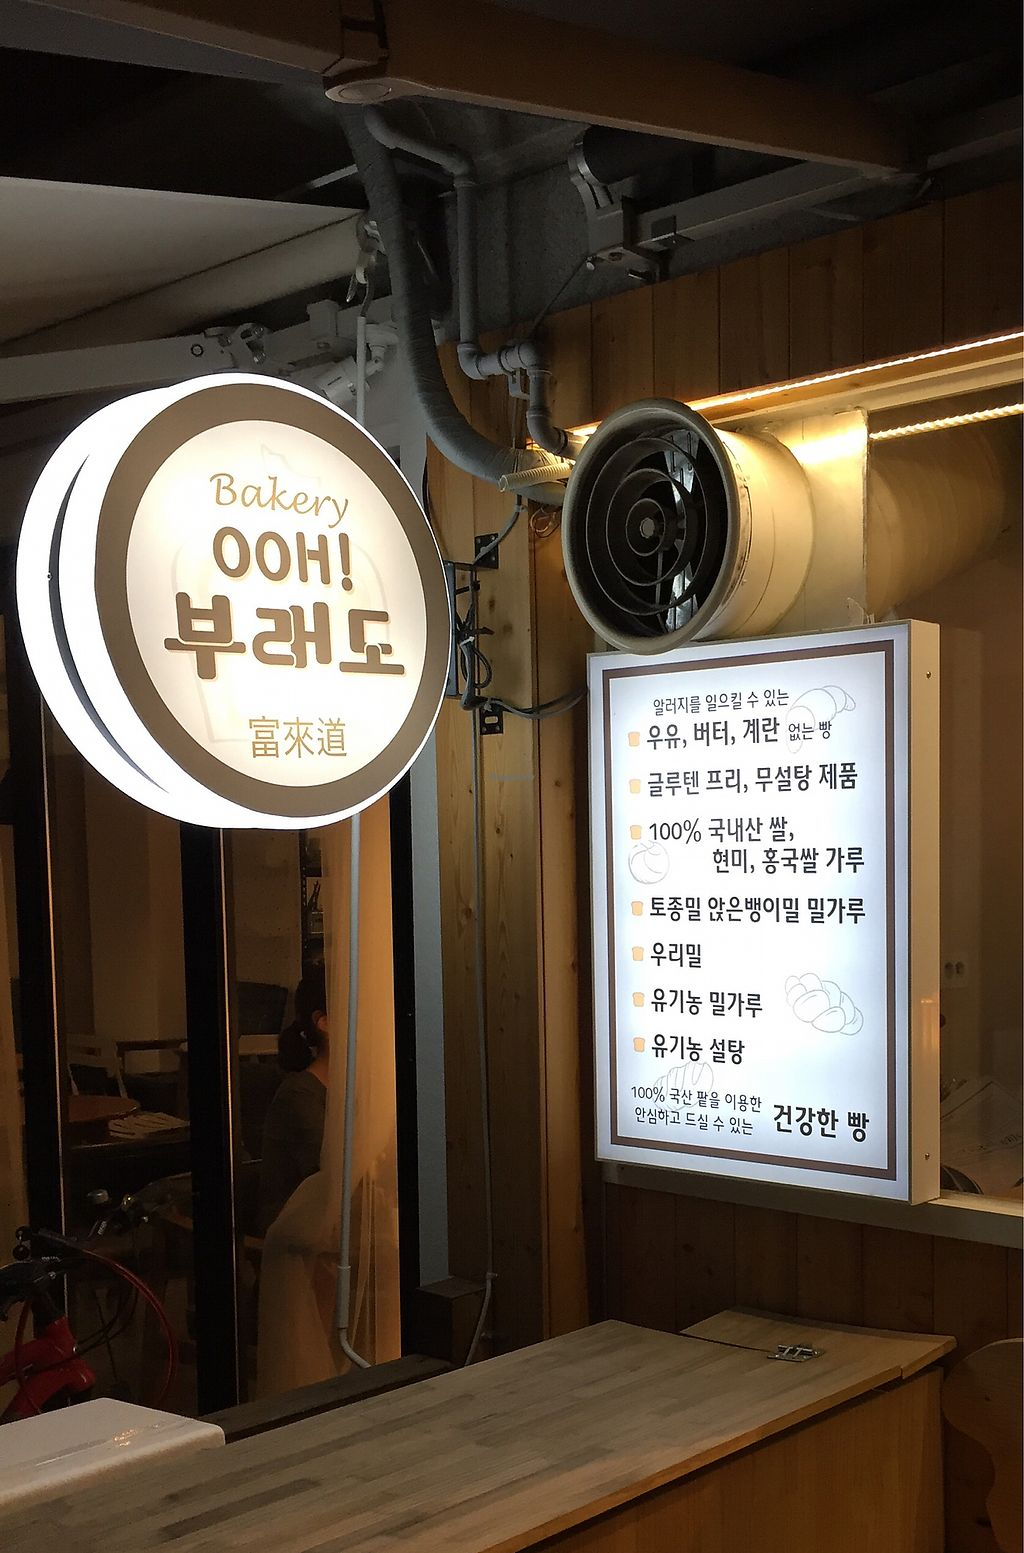 """Photo of OOH Breado - 우부래도  by <a href=""""/members/profile/Knauji82"""">Knauji82</a> <br/>all vegan! <br/> July 27, 2017  - <a href='/contact/abuse/image/86025/285462'>Report</a>"""